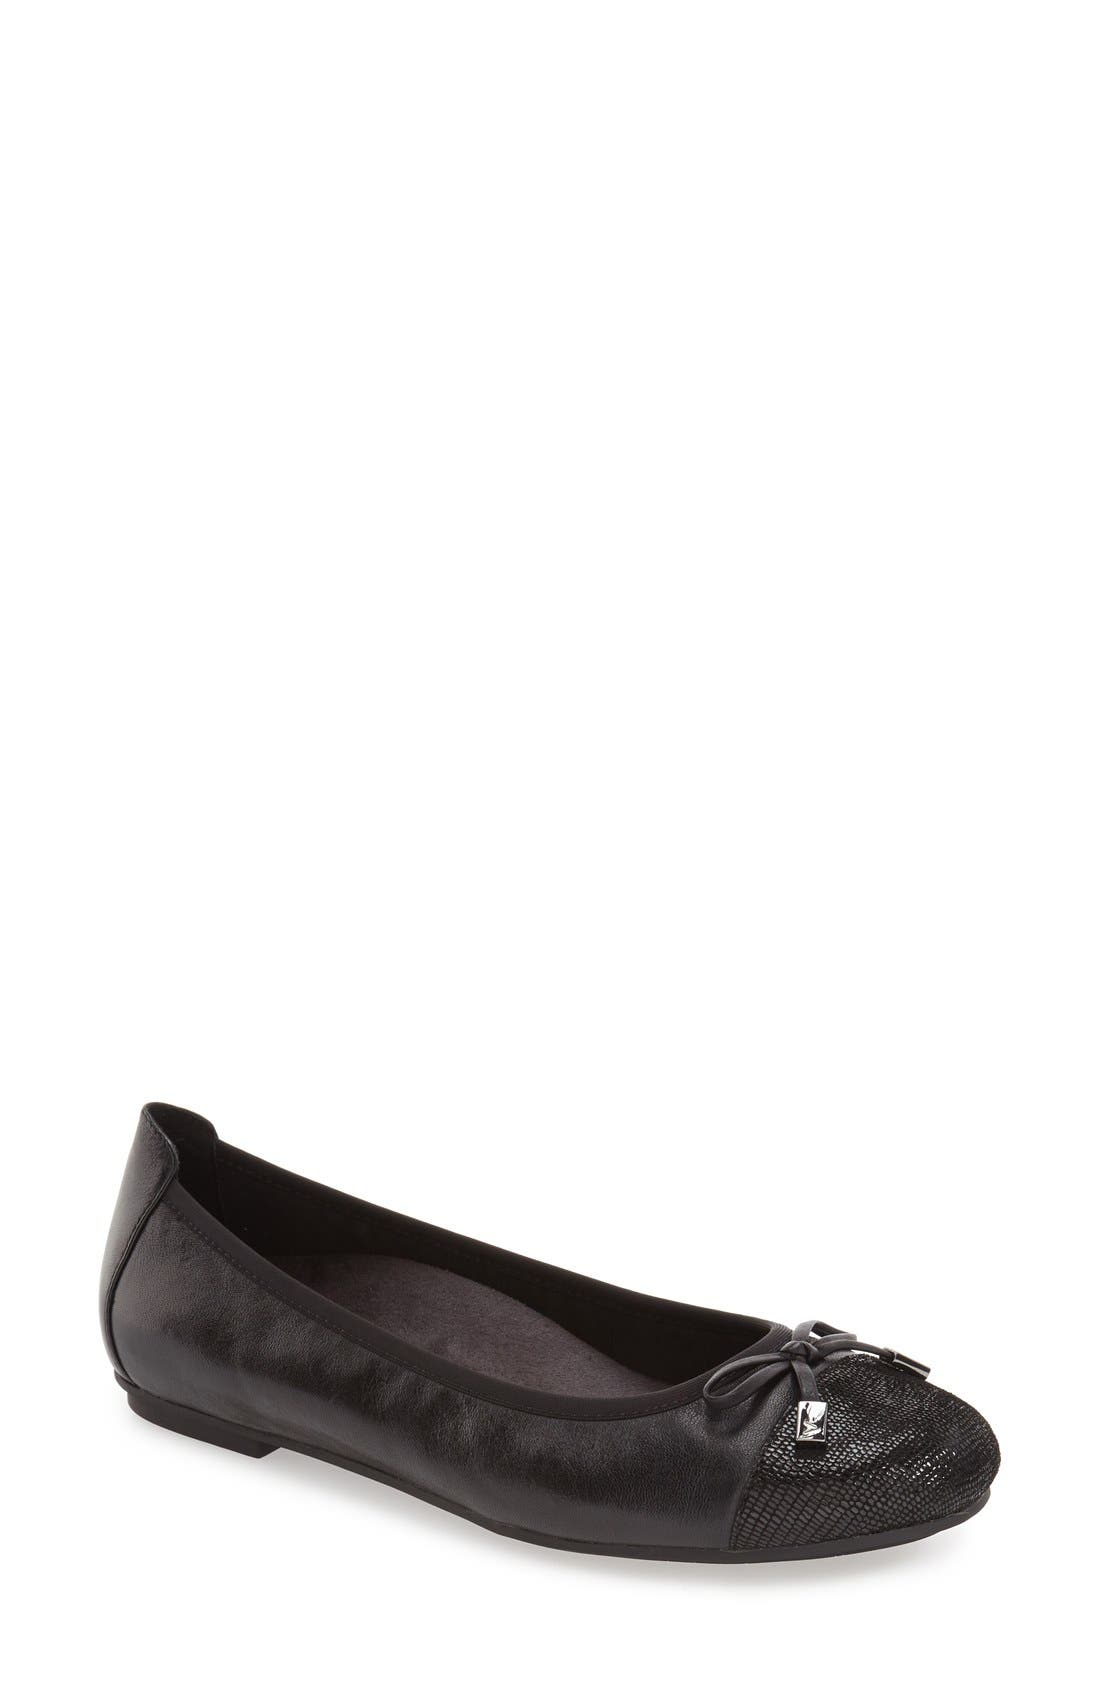 Vionic 'Minna' Leather Flat (Women)